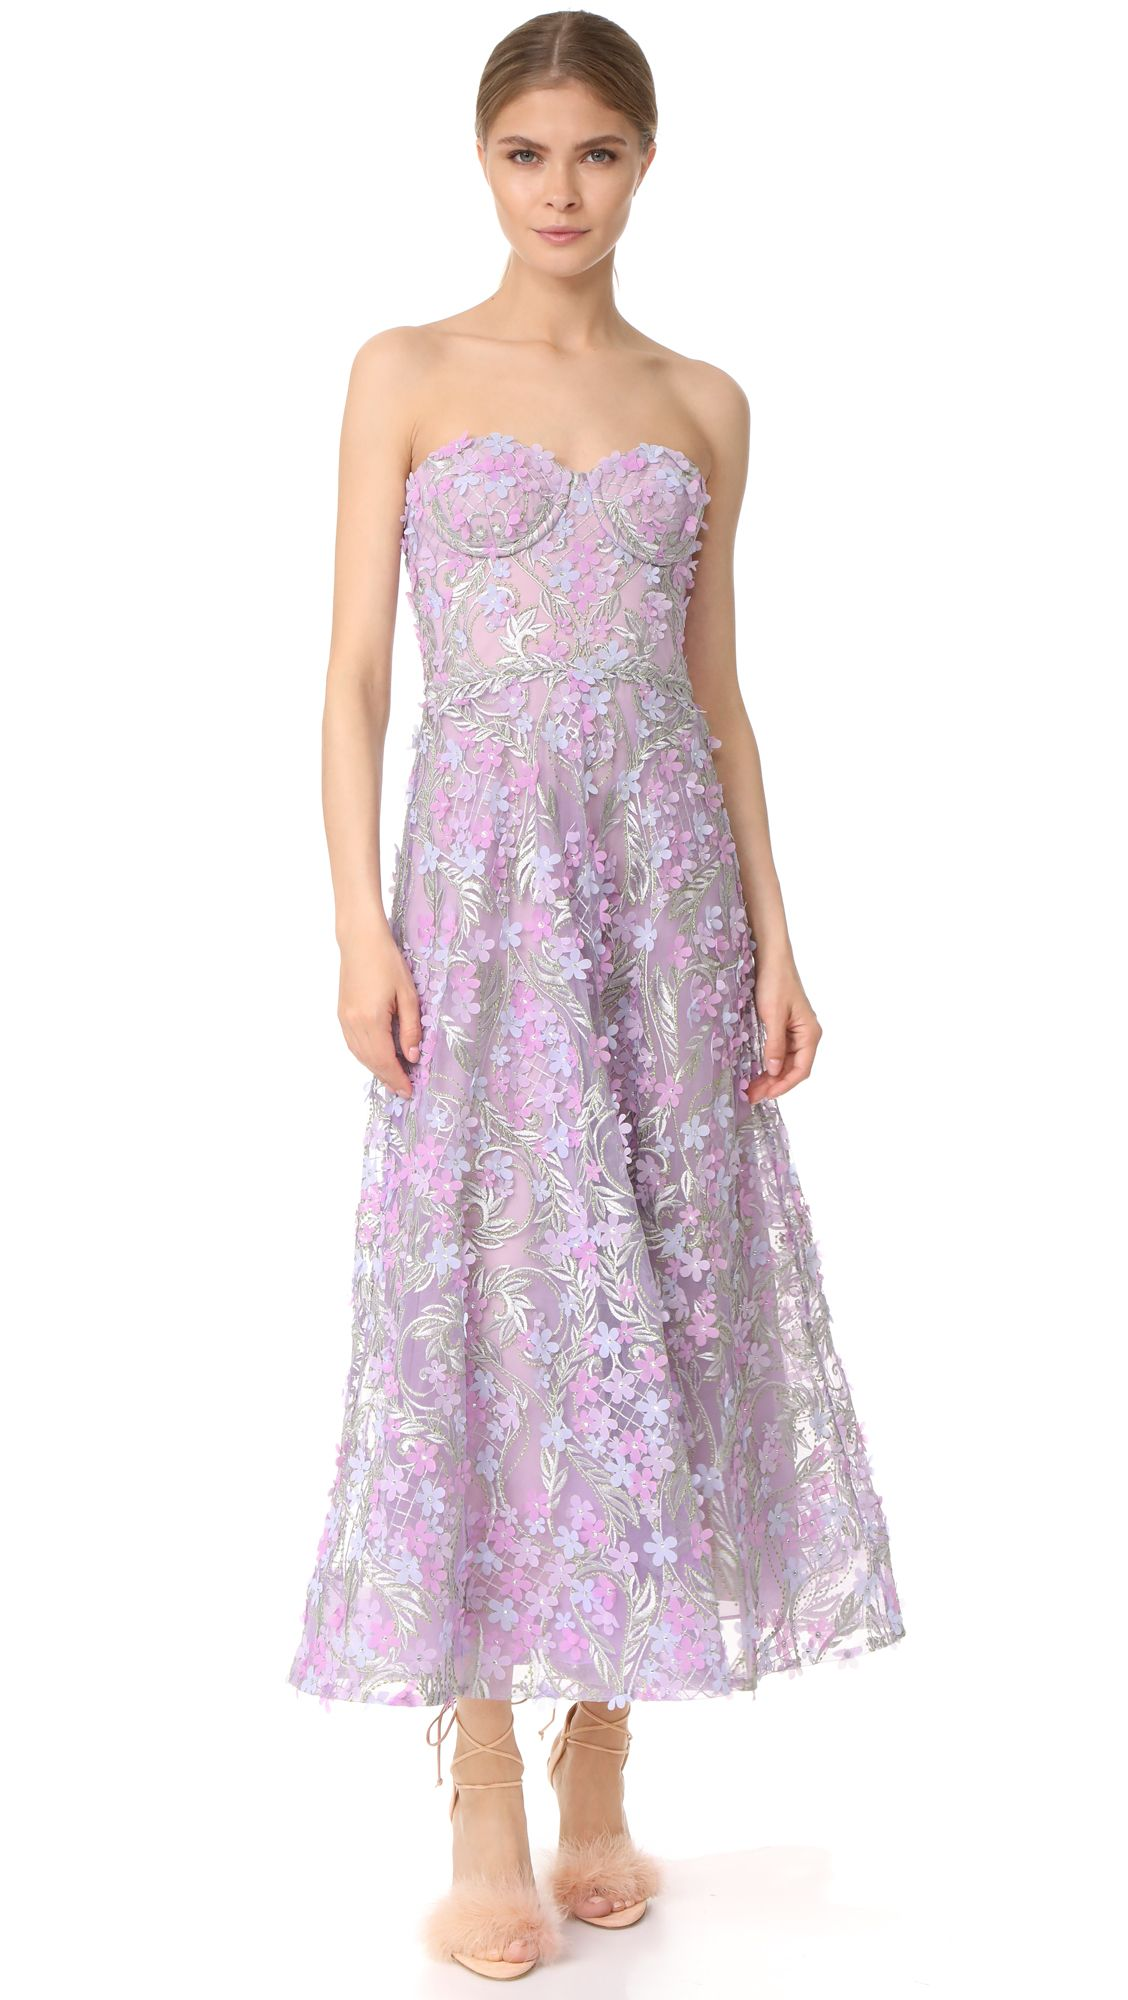 d259e1858e7dd MARCHESA NOTTE EMBROIDERED STRAPLESS TEA LENGTH GOWN.  marchesanotte  cloth